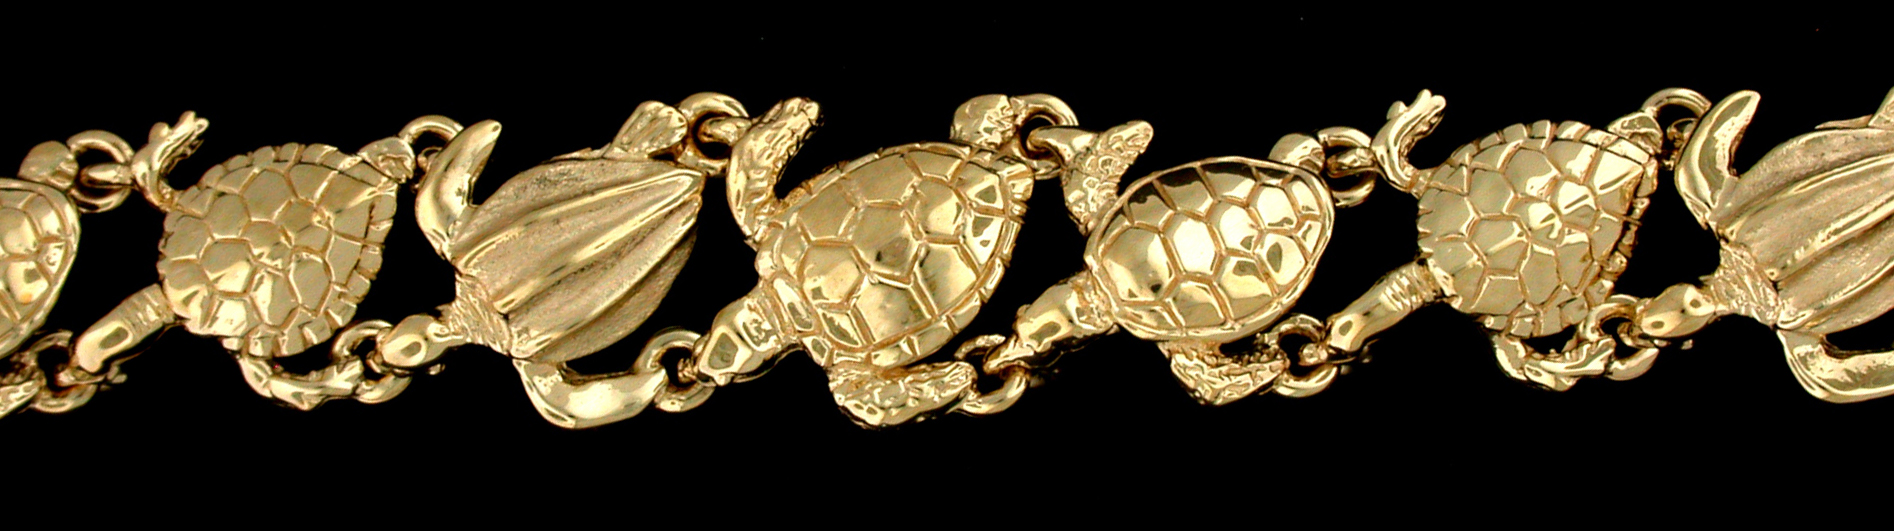 45103-Mixed Turtle Bracelet